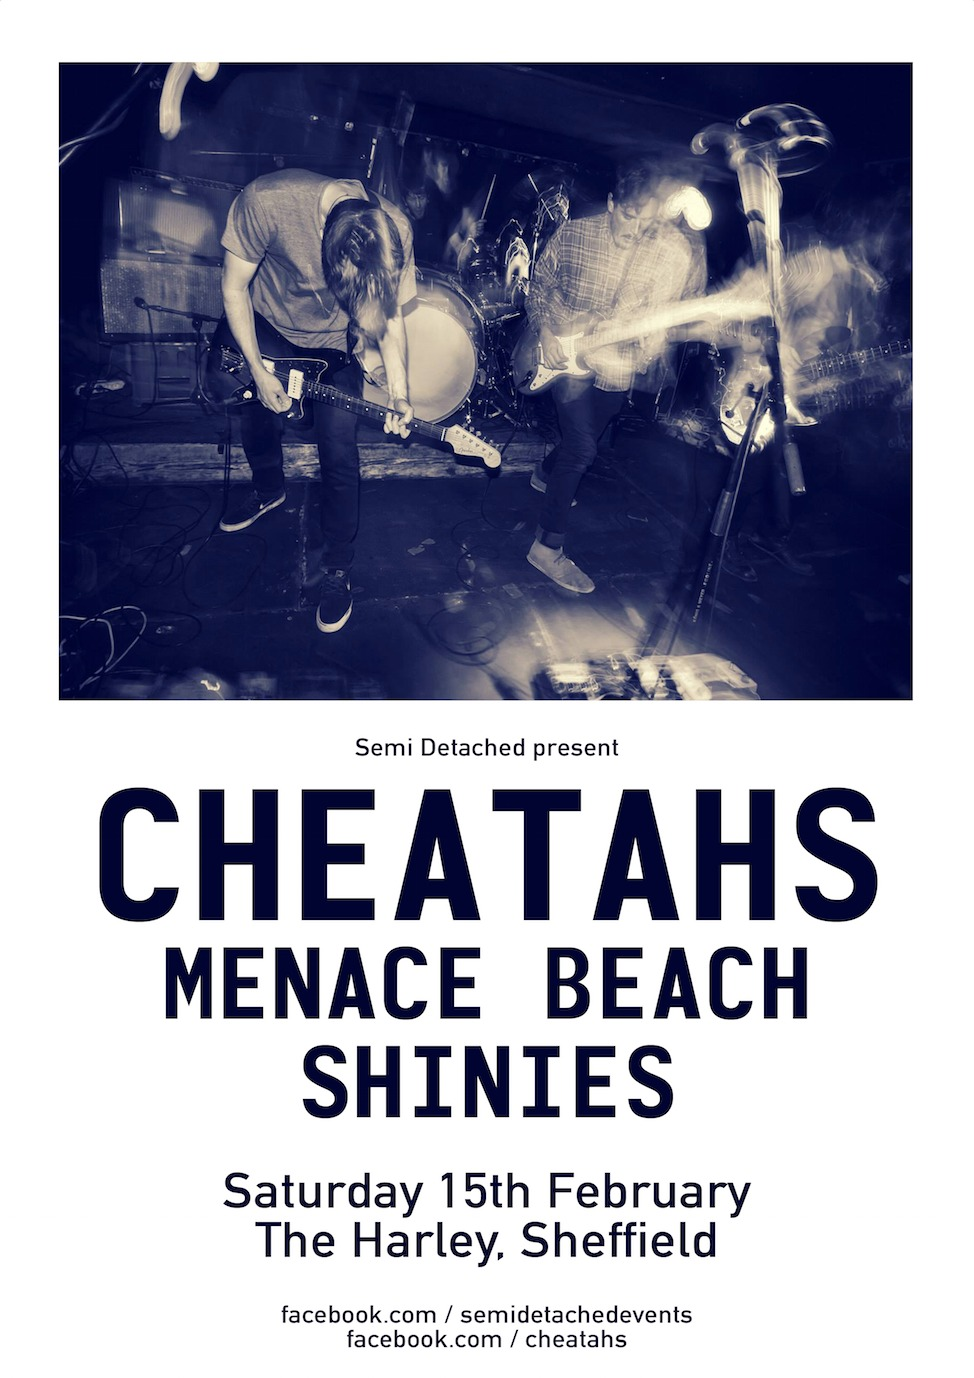 CHEATAHS + Menace Beach + Shinies More info available here. http://fb.com/semidetachedevents